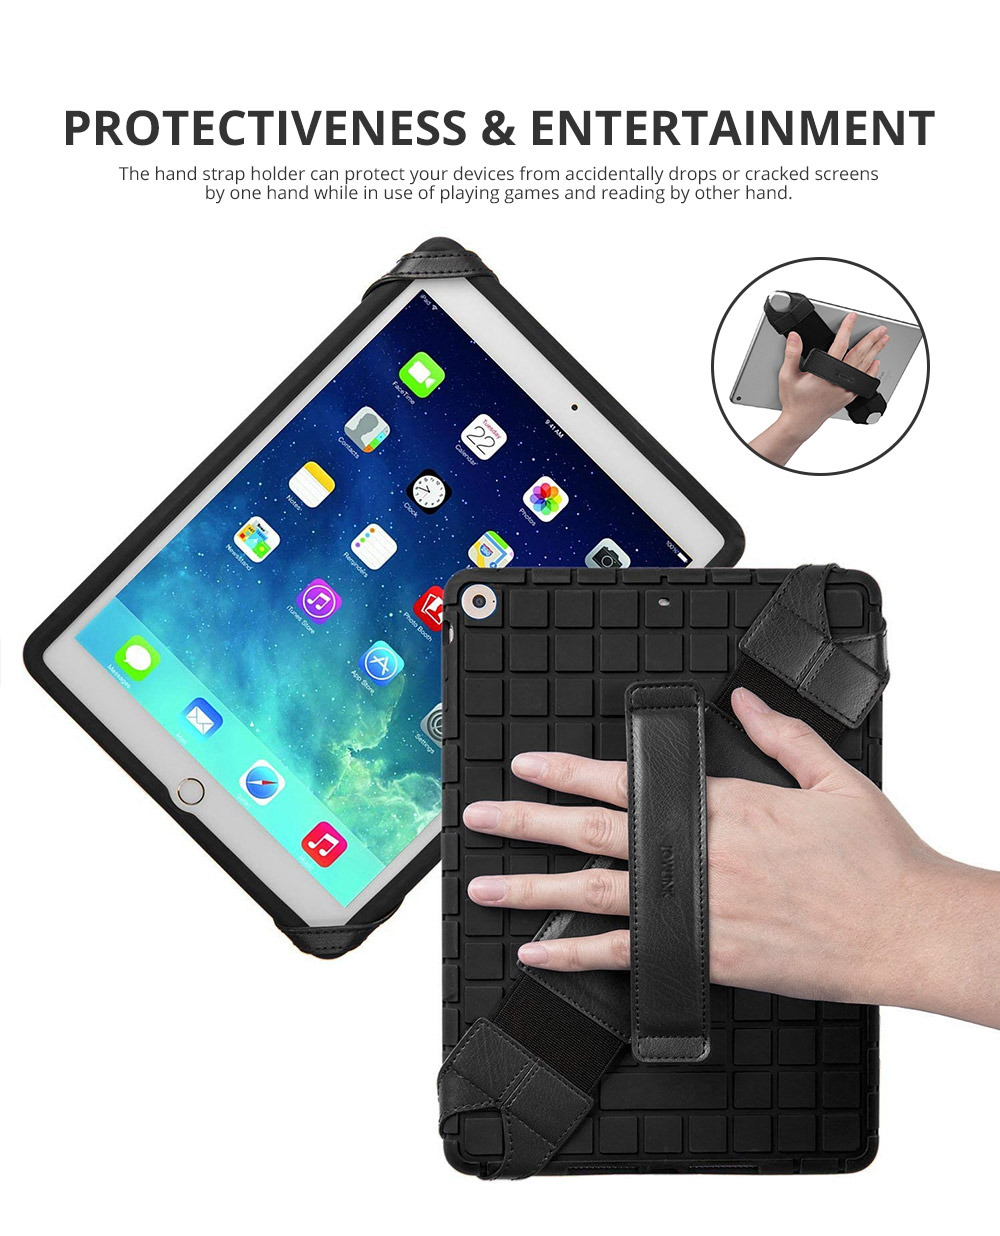 Universal PU Leather Hand Strap Holder for Phones Tablets, 360 Degrees Swivel Leather Handle Grip with Elastic Belt for 9.7 inches Pad and 10.1 inches iPad or Android devices 9